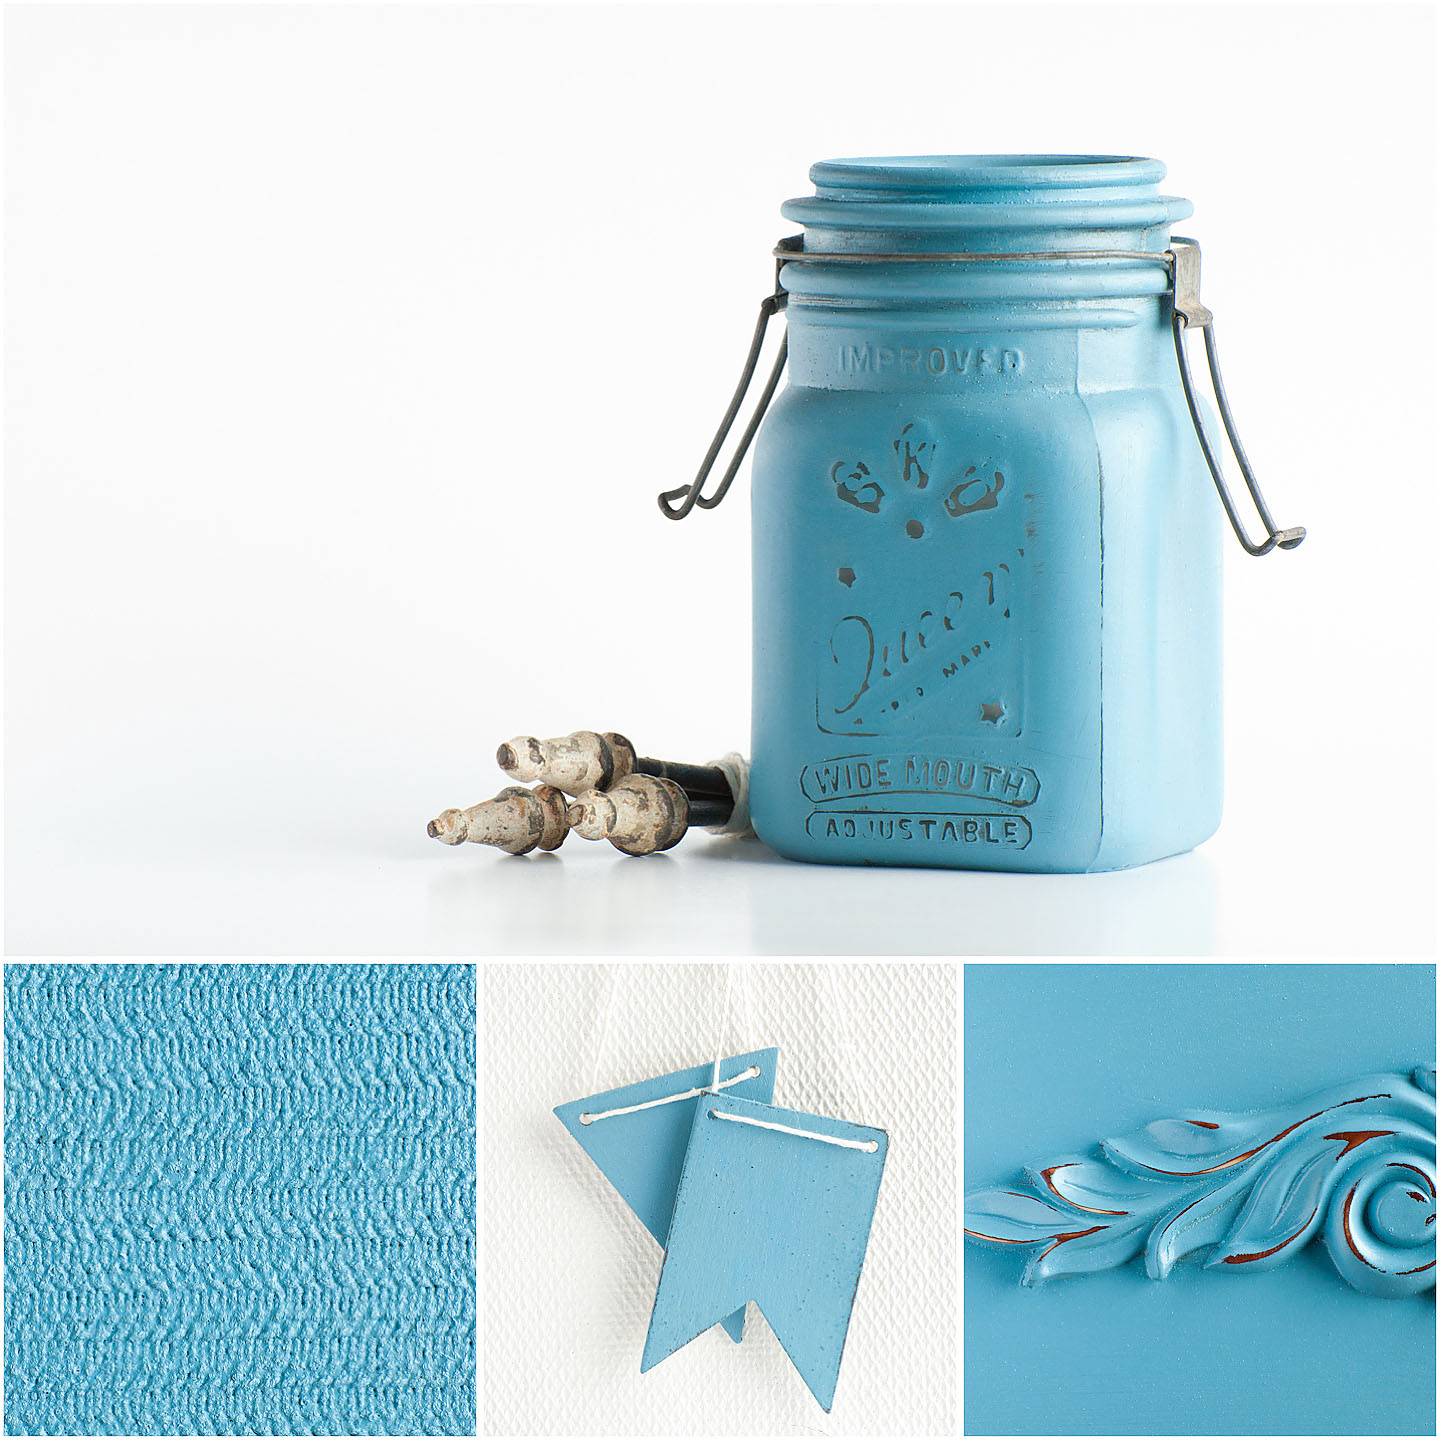 French Enamel is named for the French enamelware pitchers Marian has always admired in antique stores and magazines. The colour is a vibrant, mid-tone blue.  Mix it with Tricycle for a vibrant purple or Typewriter for a darker, more muted blue. It pairs well with Flow Blue and Mustard Seed Yellow.